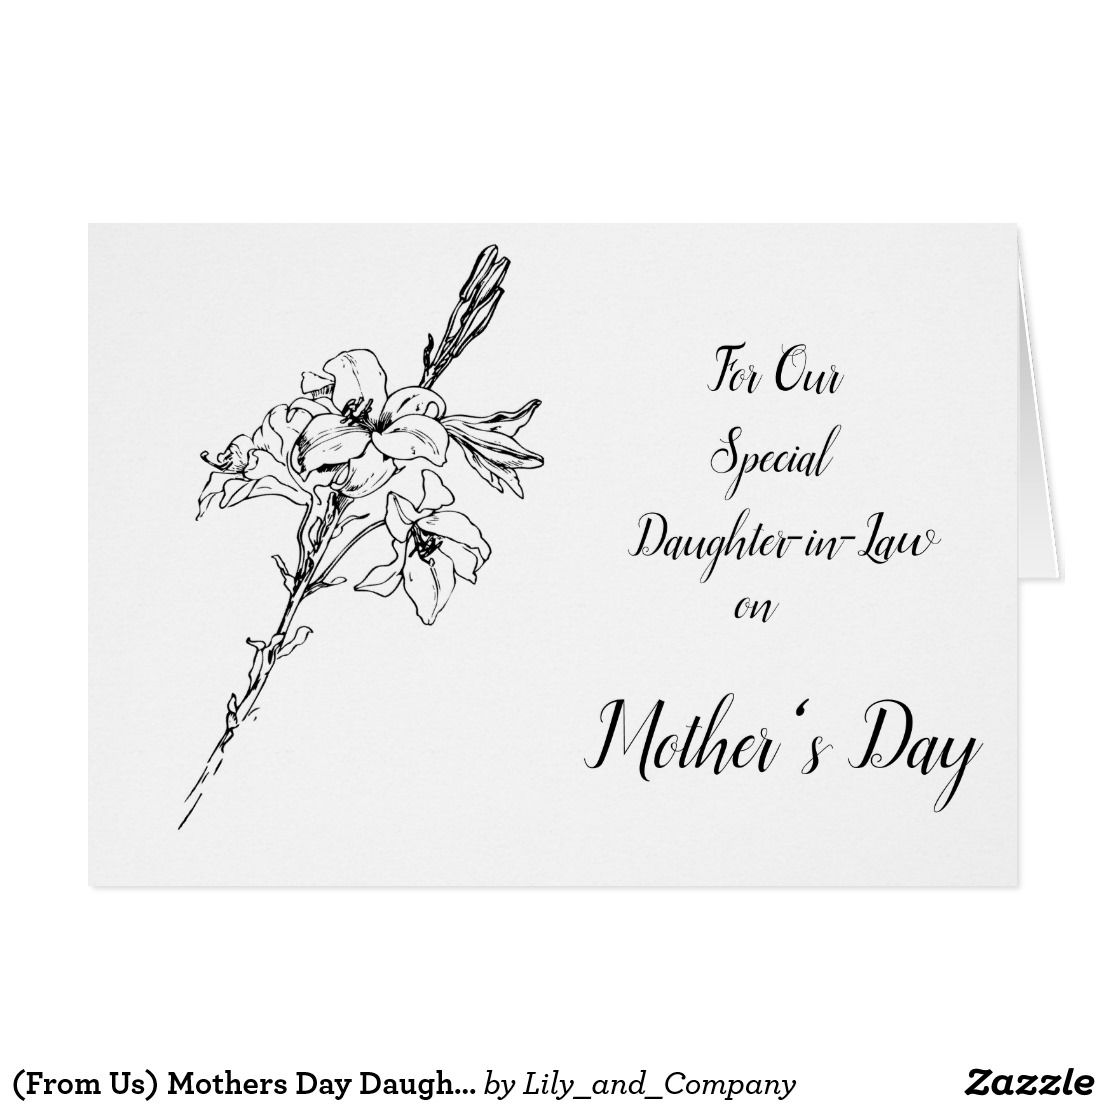 free mothers day images for daughter in law